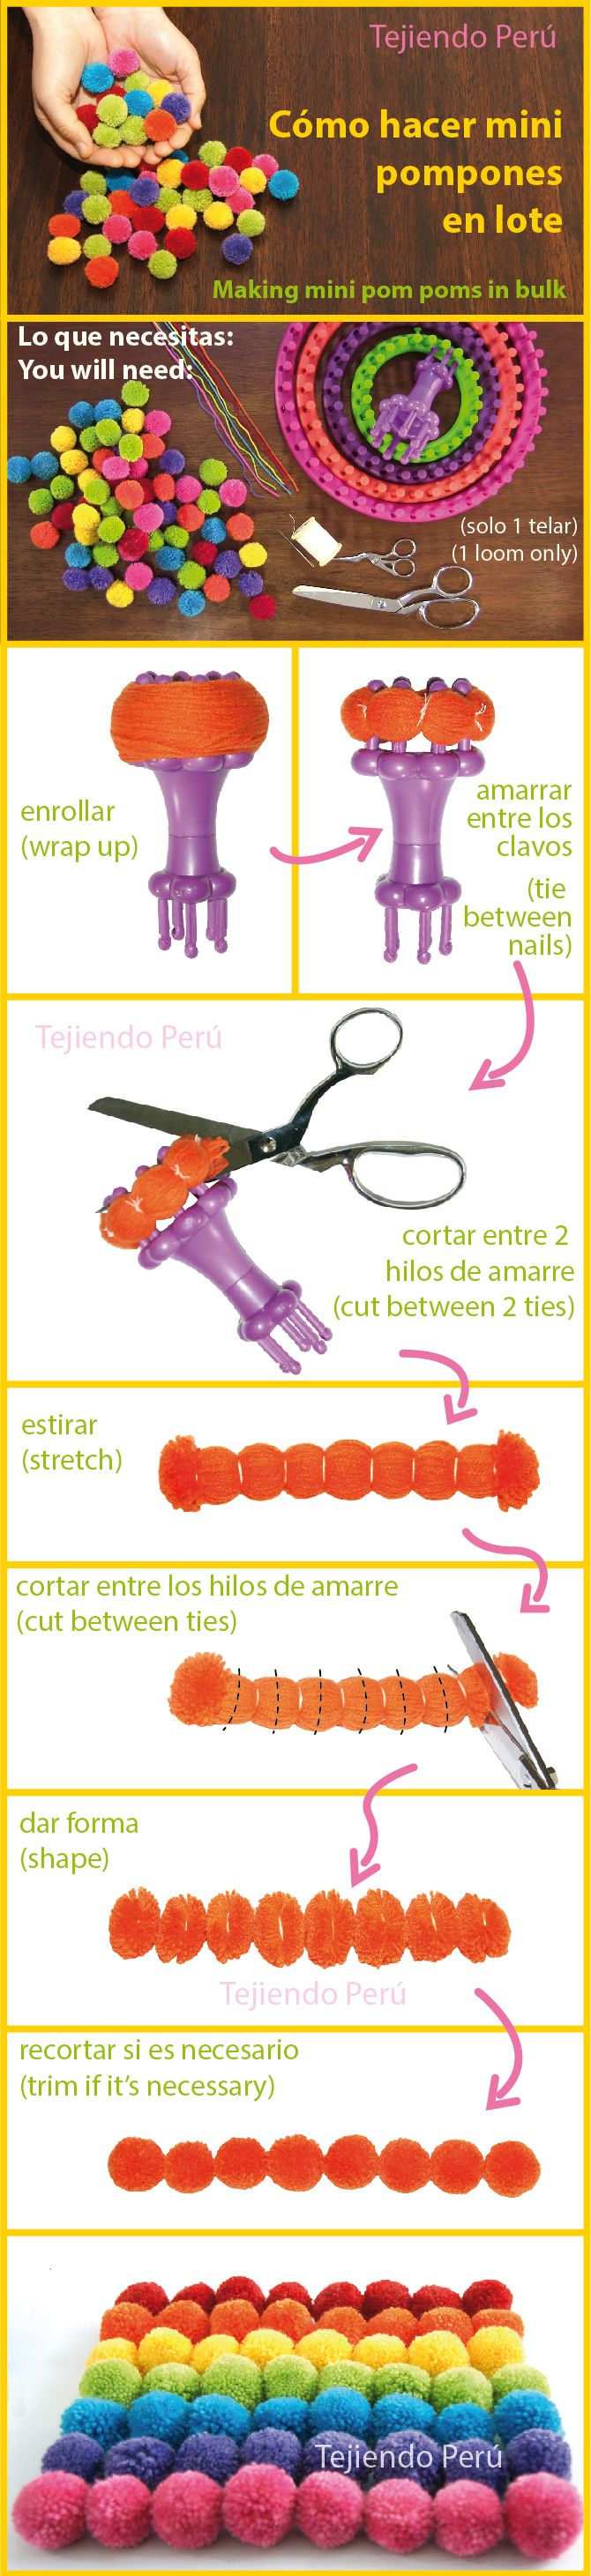 Cómo hacer mini pompones de lana en lote!  Making mini pom-poms in bulk! Encontramos un uso diferente para los telares redondos Aquí pueden ver el mini video tutorial: youtu.be/TwyGc67MZfk This video includes English subtitles